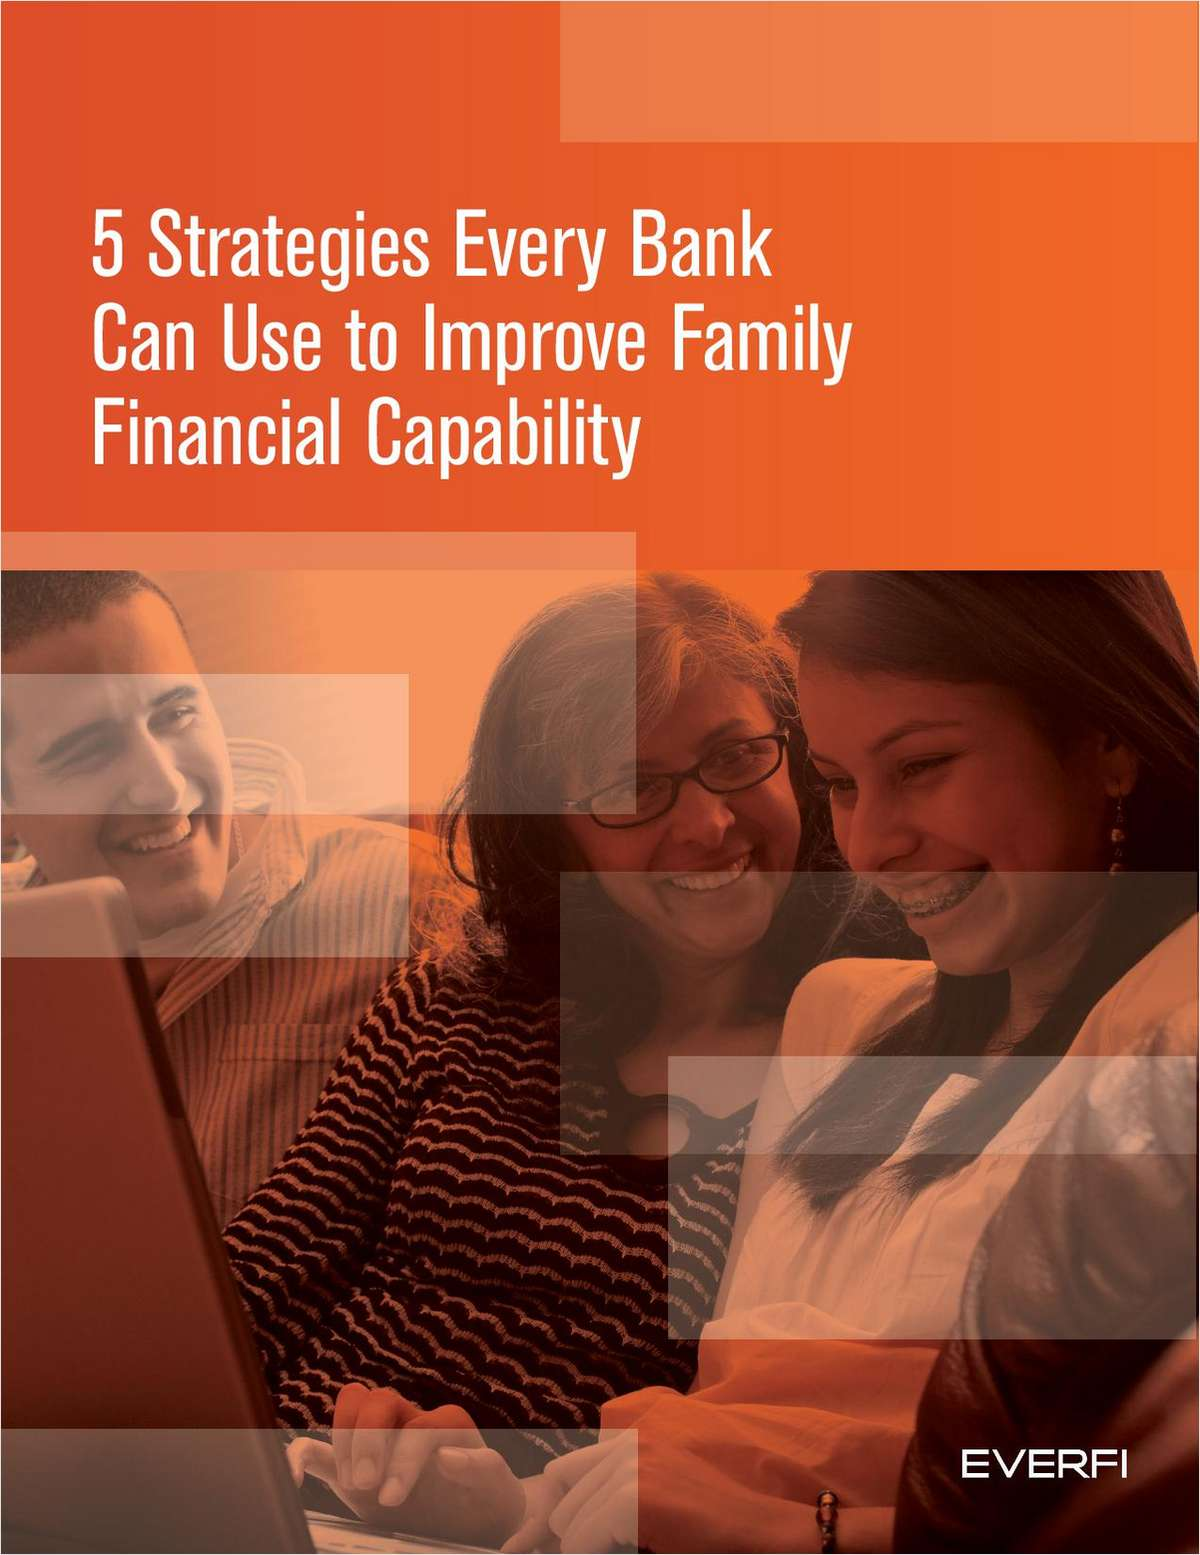 5 Strategies Every Bank Can Use to Improve Family Financial Capability